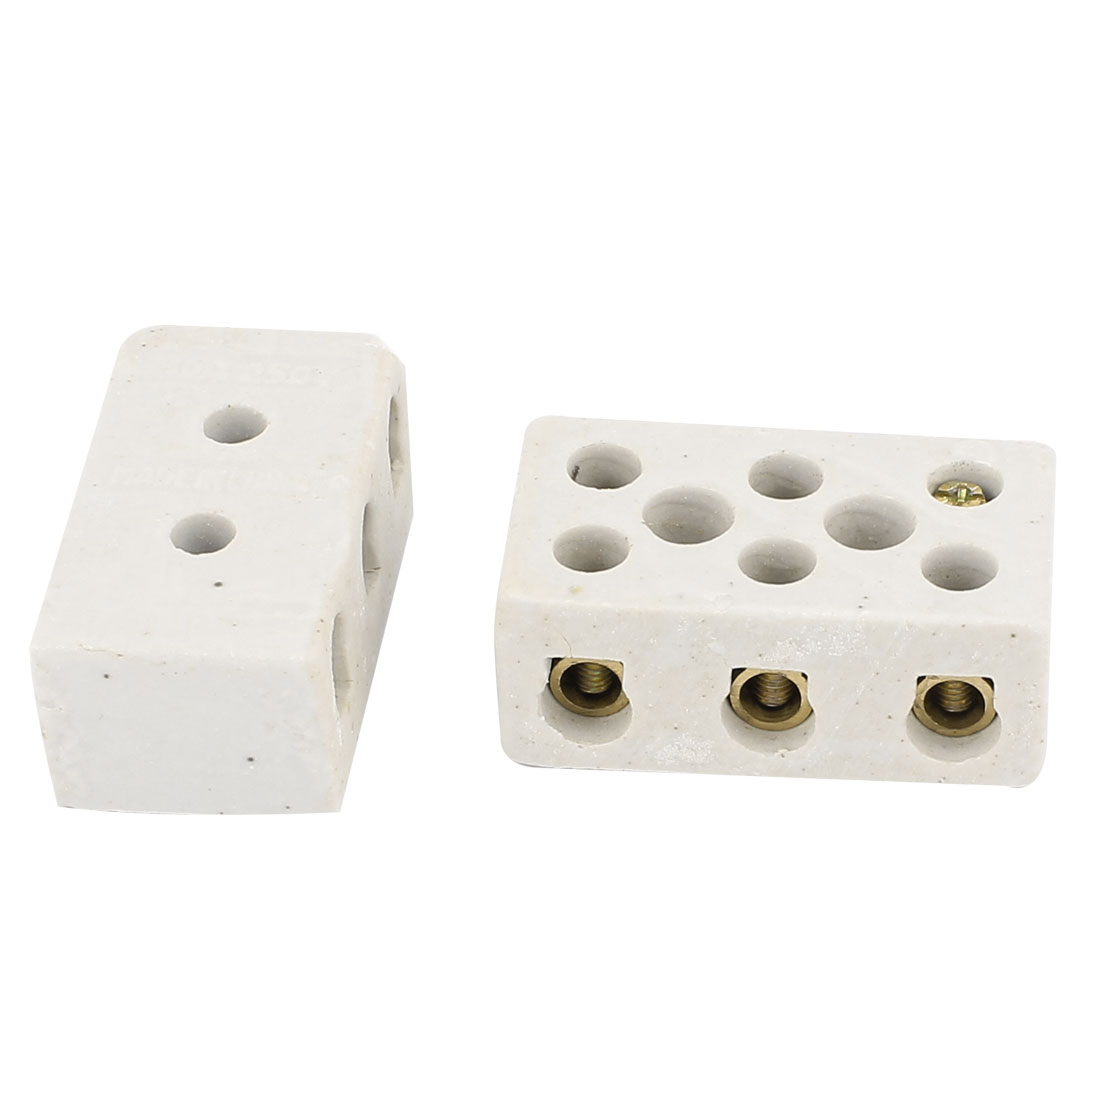 2Pcs White 30A 3W8H 3 Way 8 Hole Ceramic Connector Porcelain Terminal Block